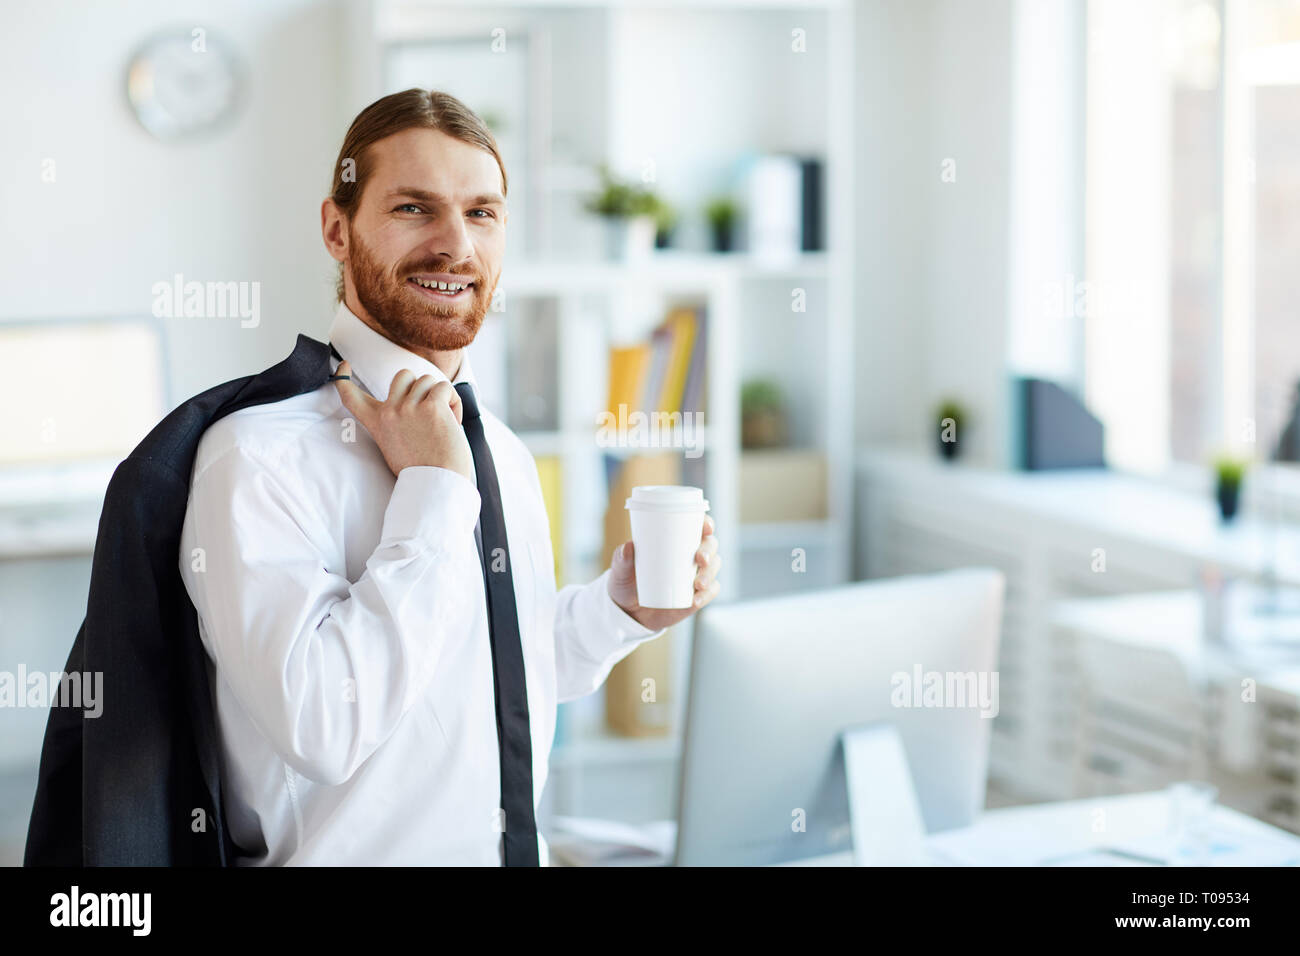 Employee in formalwear - Stock Image